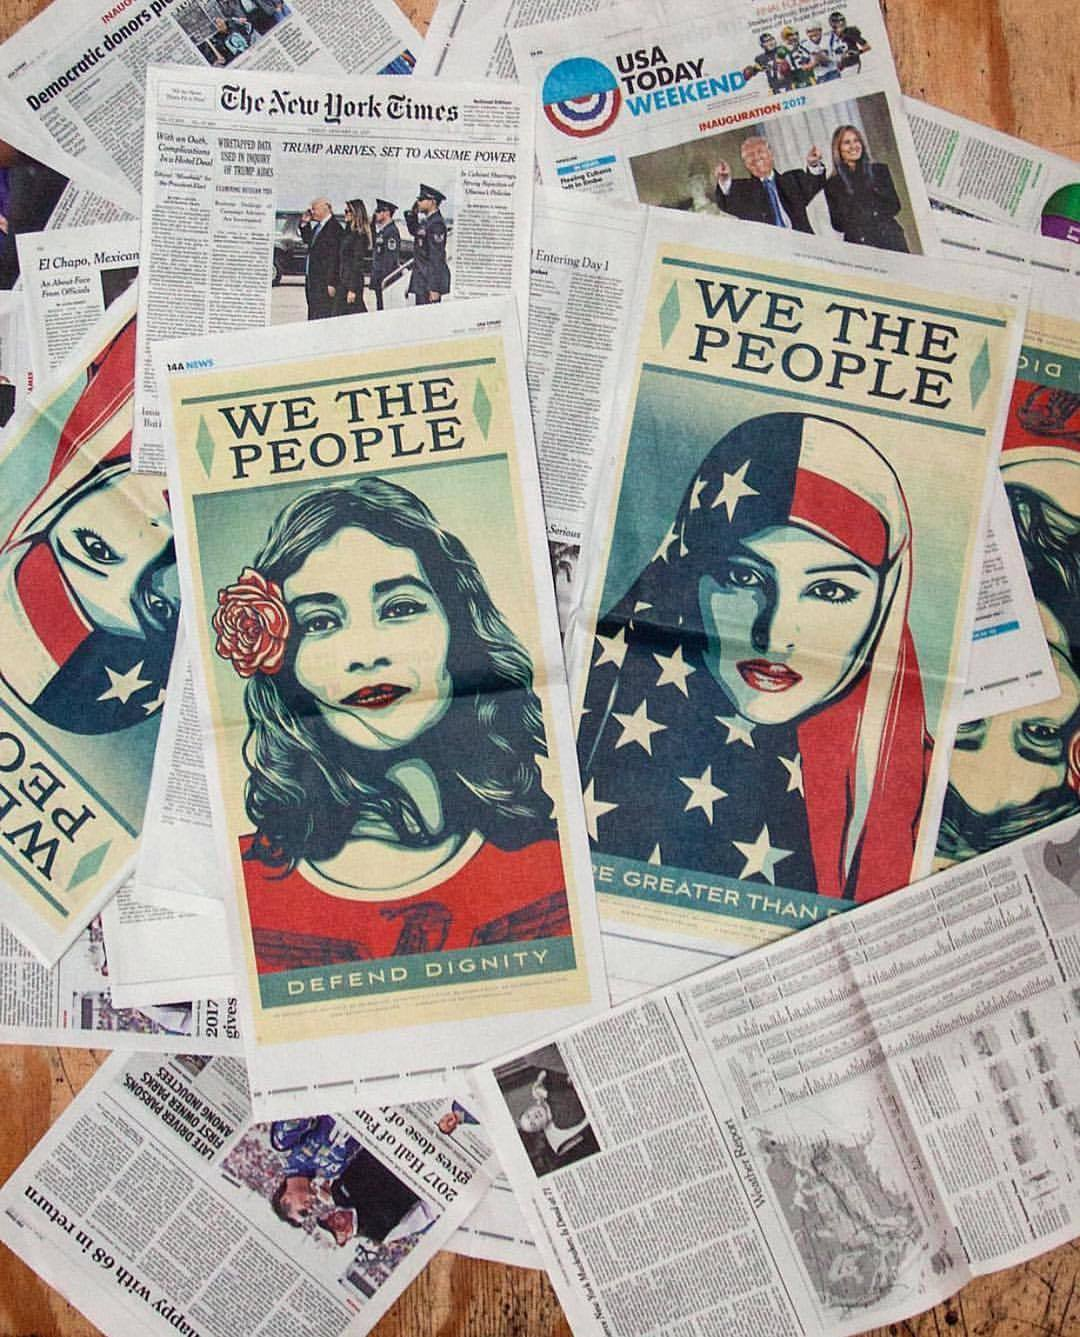 We the People Defend Dignity & We the People Are Greater Than Fear full page spreads published in the Washington Post on inauguration day.